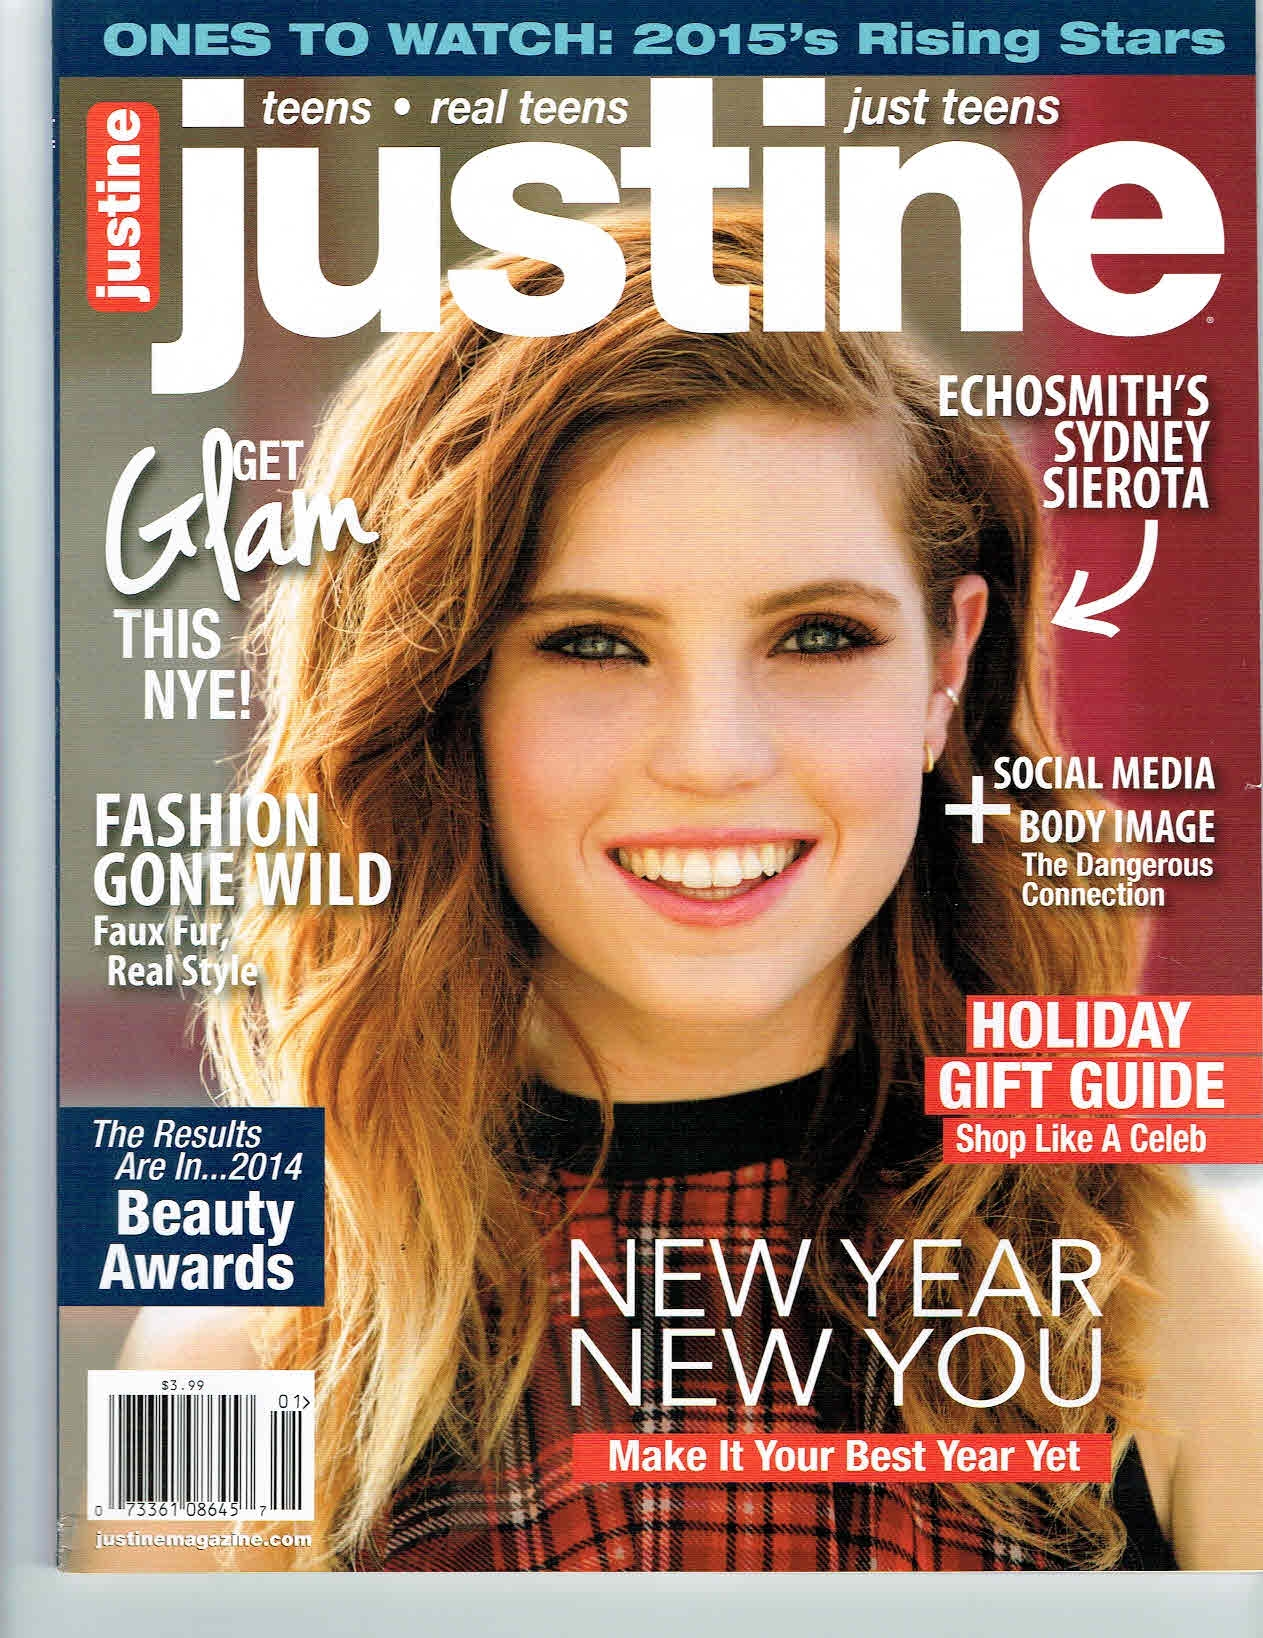 Justine Magazine Dec/Jan 2015 issue featuring Echosmith's Sydney Sierota wearing BCBGeneration top from Sachi